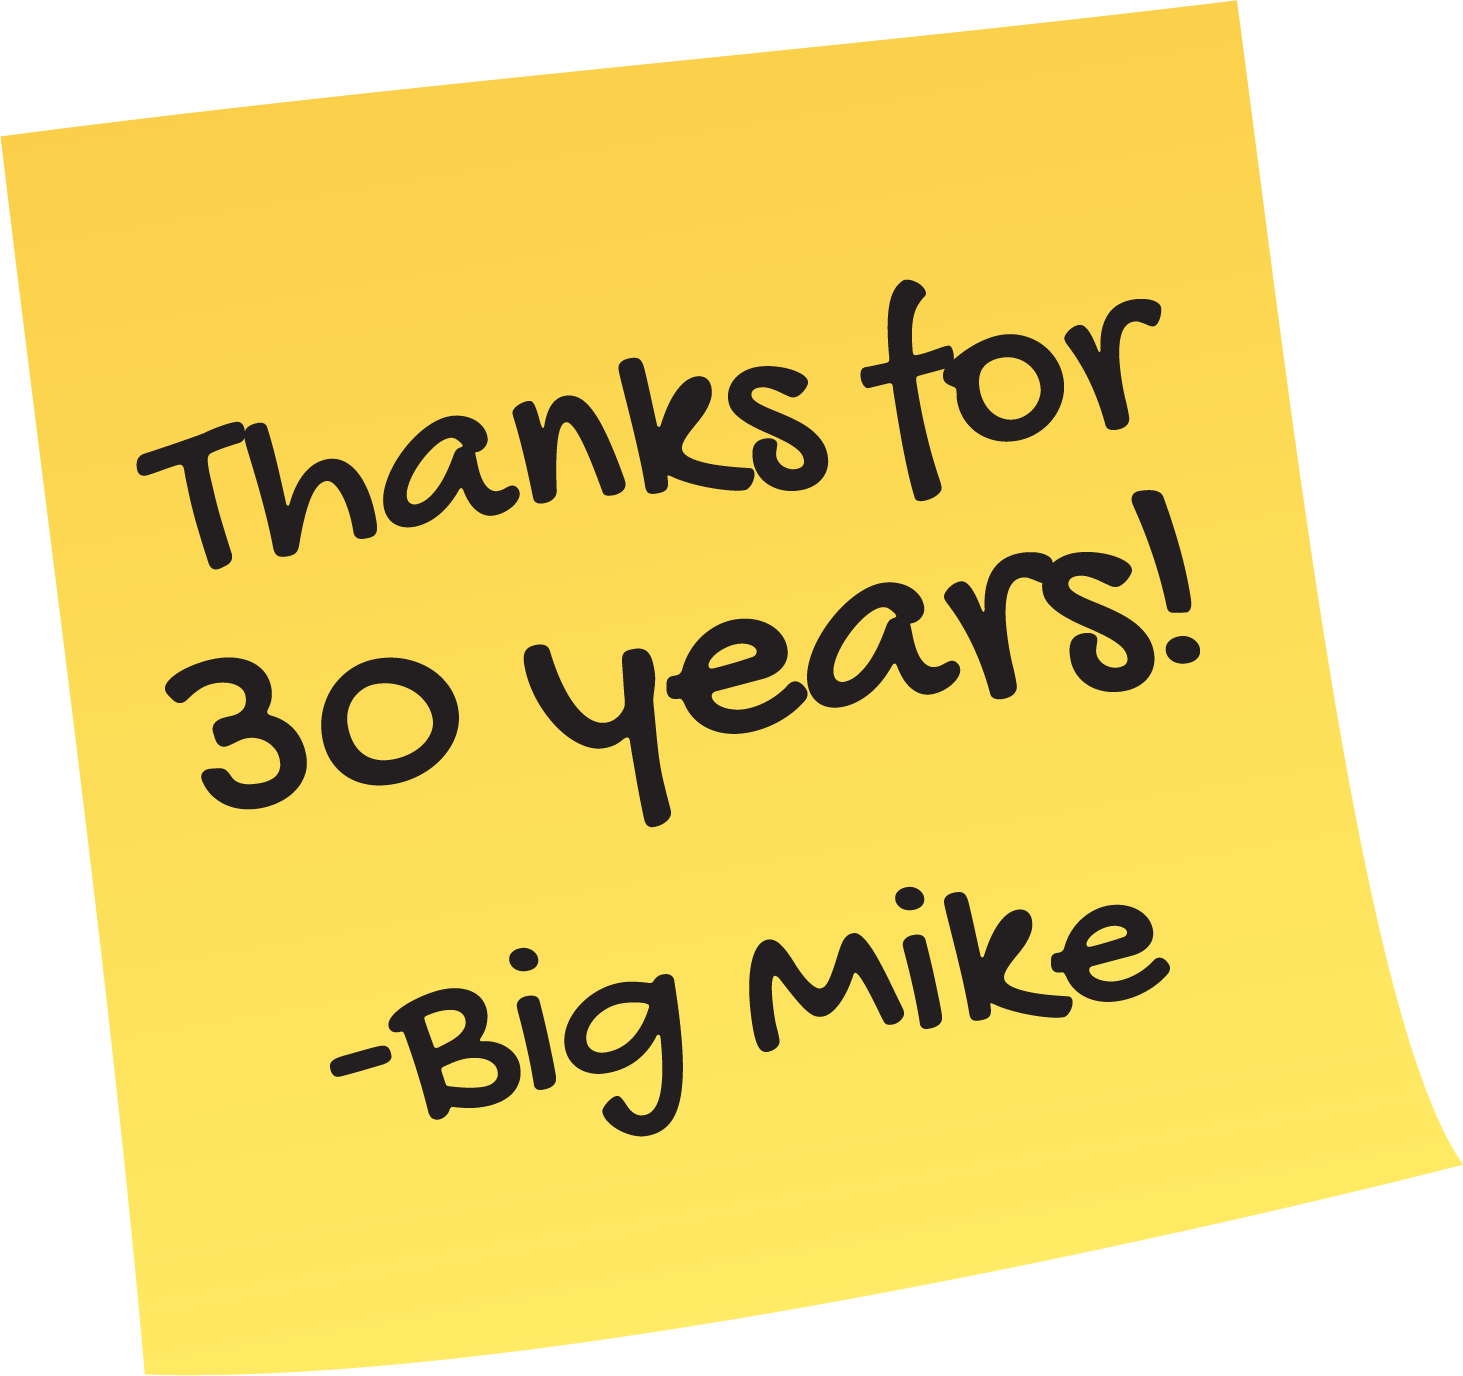 Milio's Post -It Thank you note